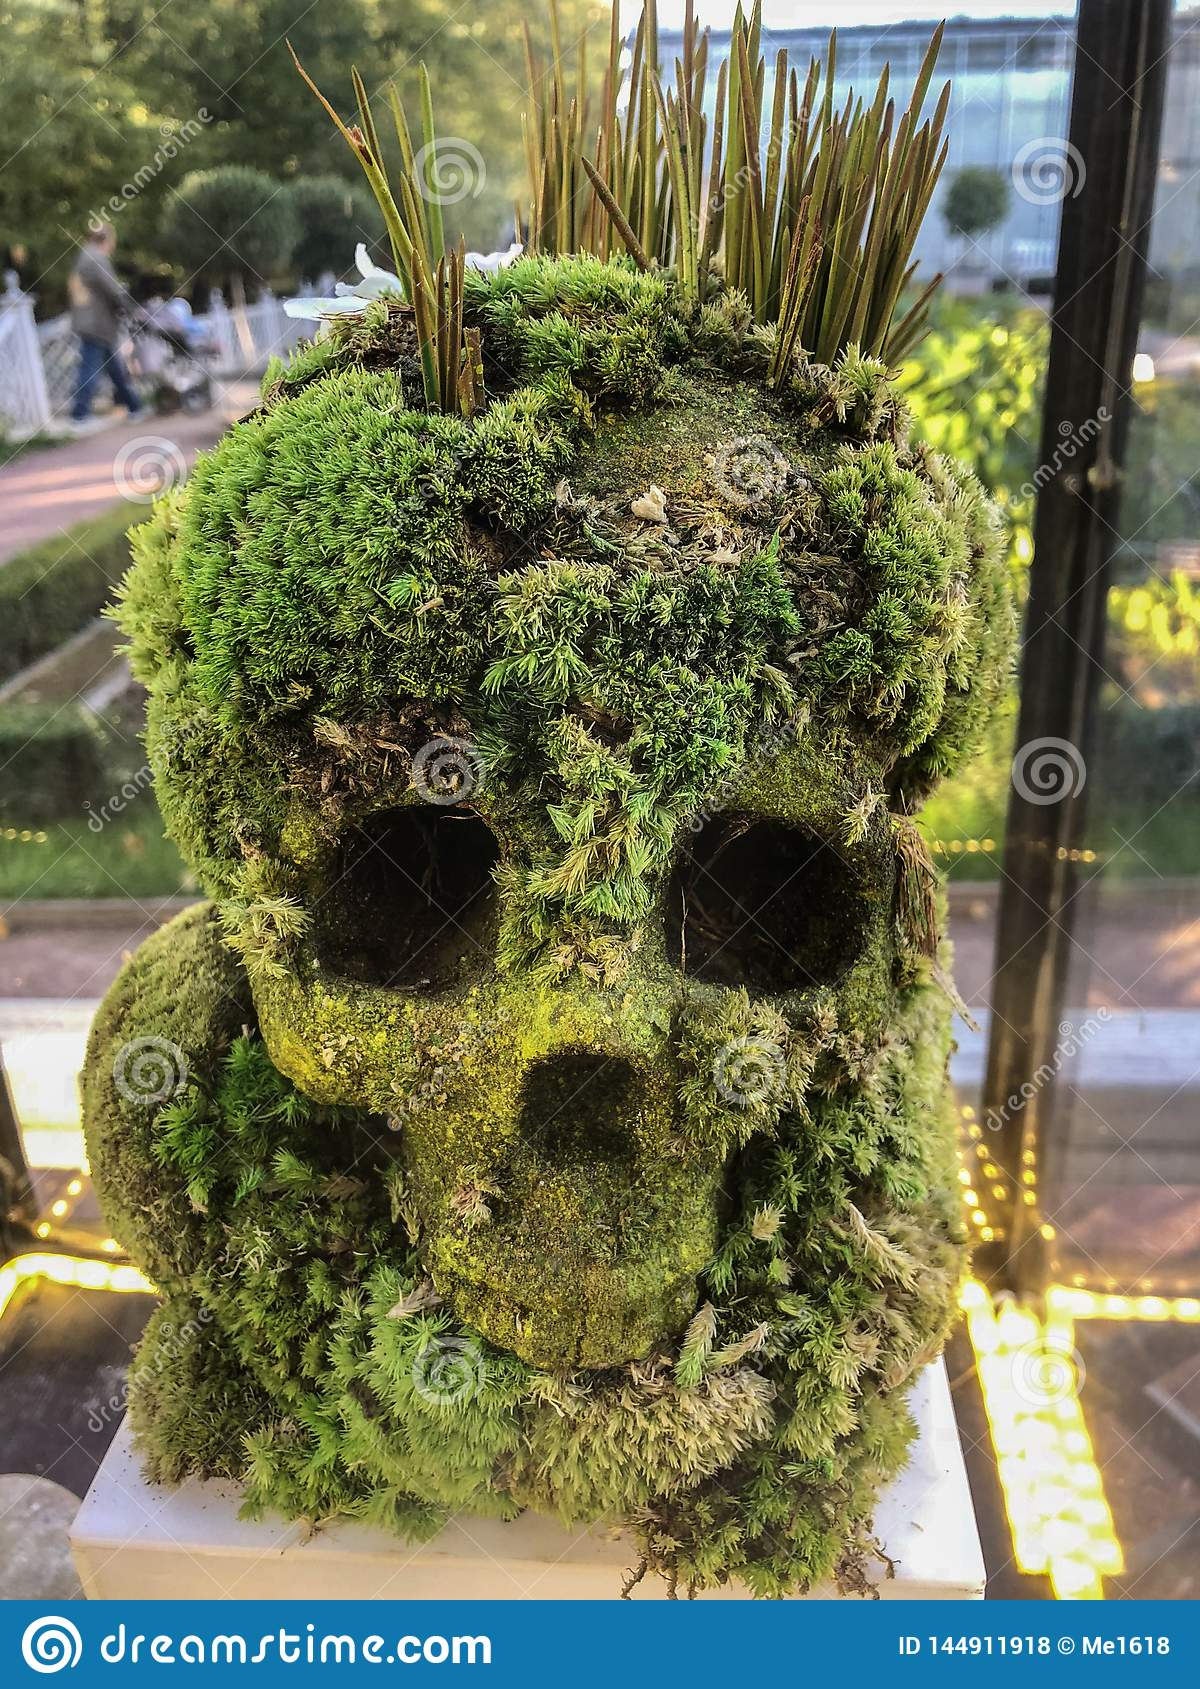 Human skull made from plants.